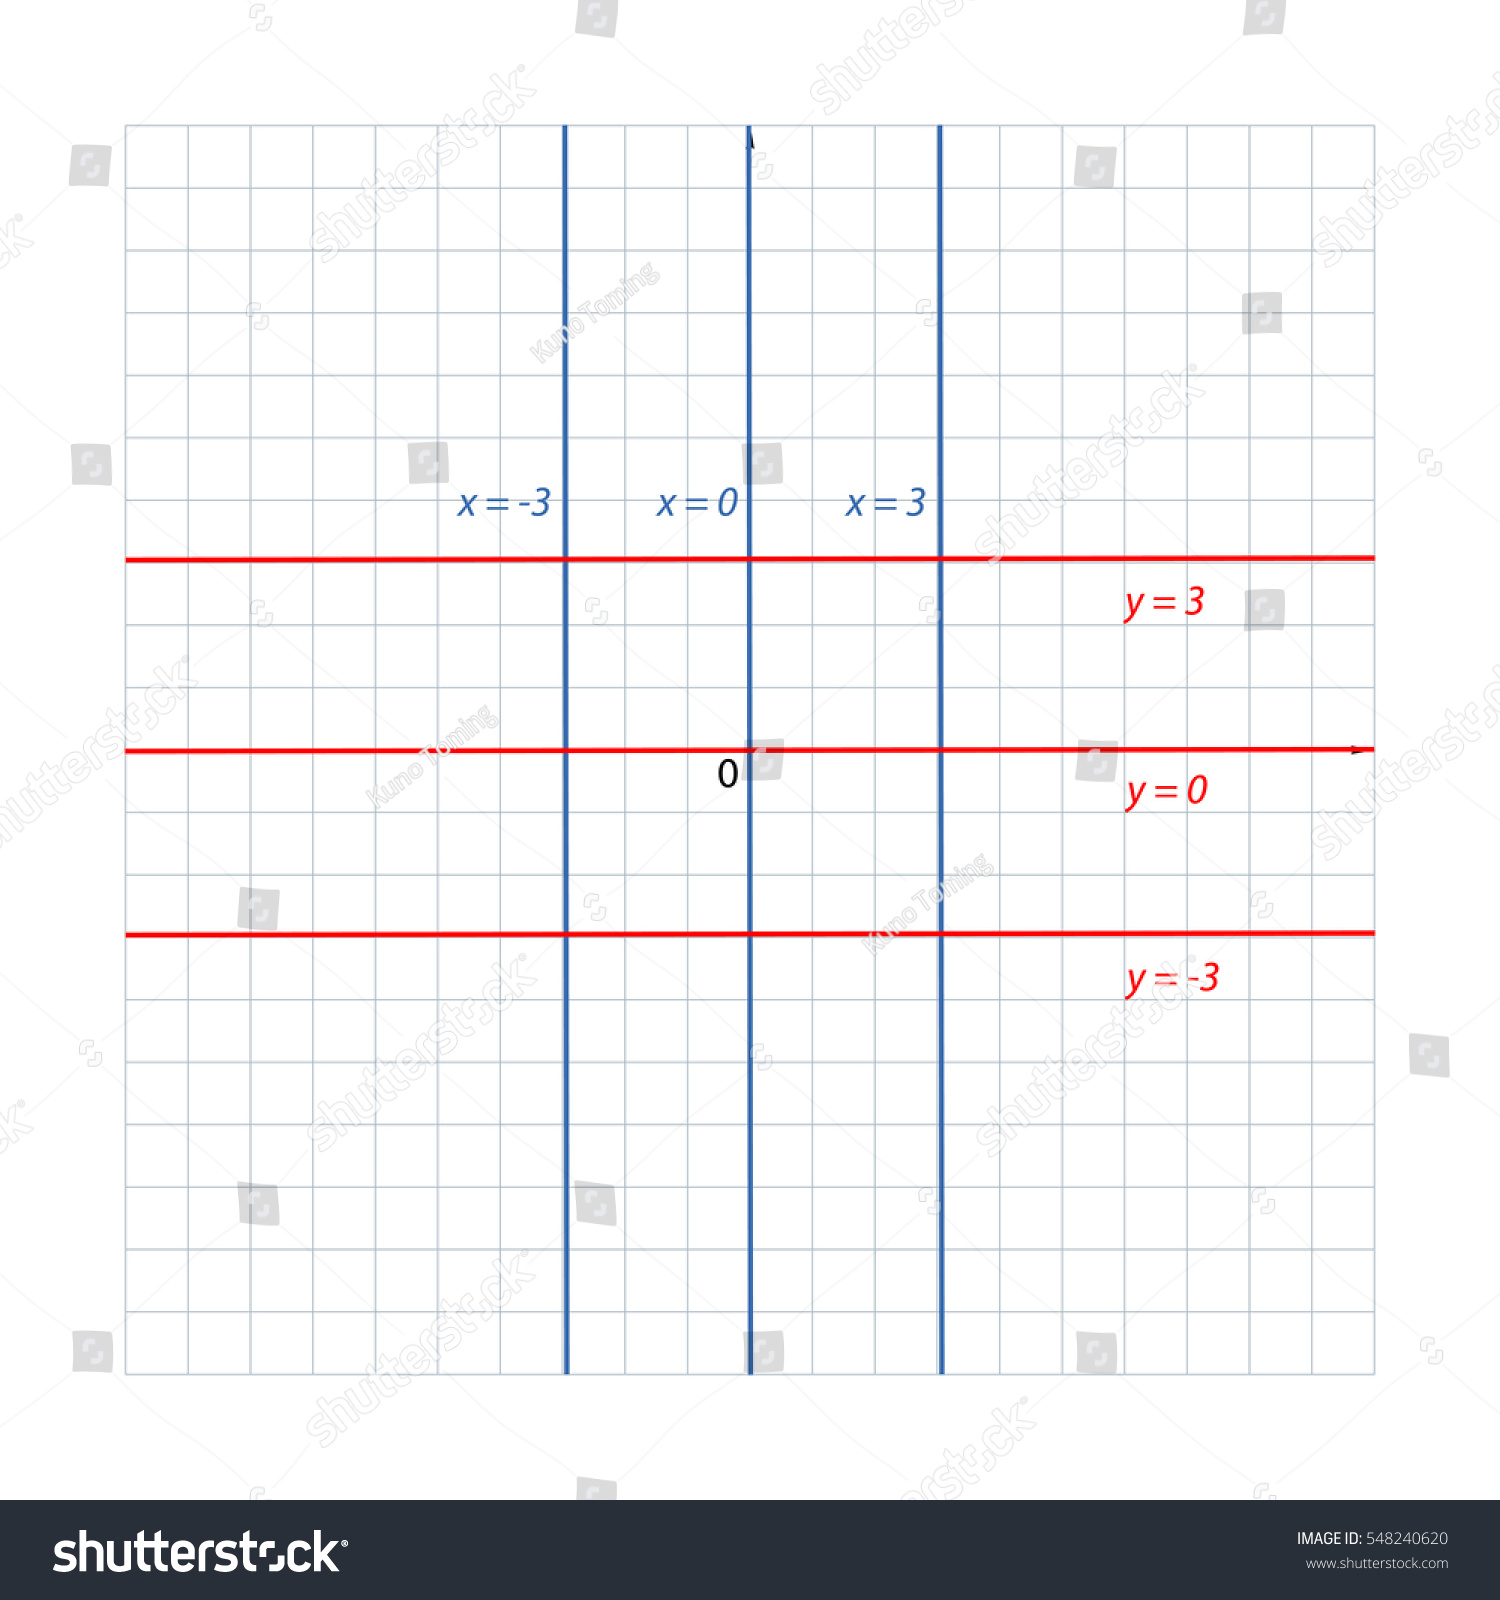 worksheet Pumpkin Coordinate Graph christmas coordinate grid pictures two step equations holiday graphing timed math worksheets stock vector illustration shows the location of parallel